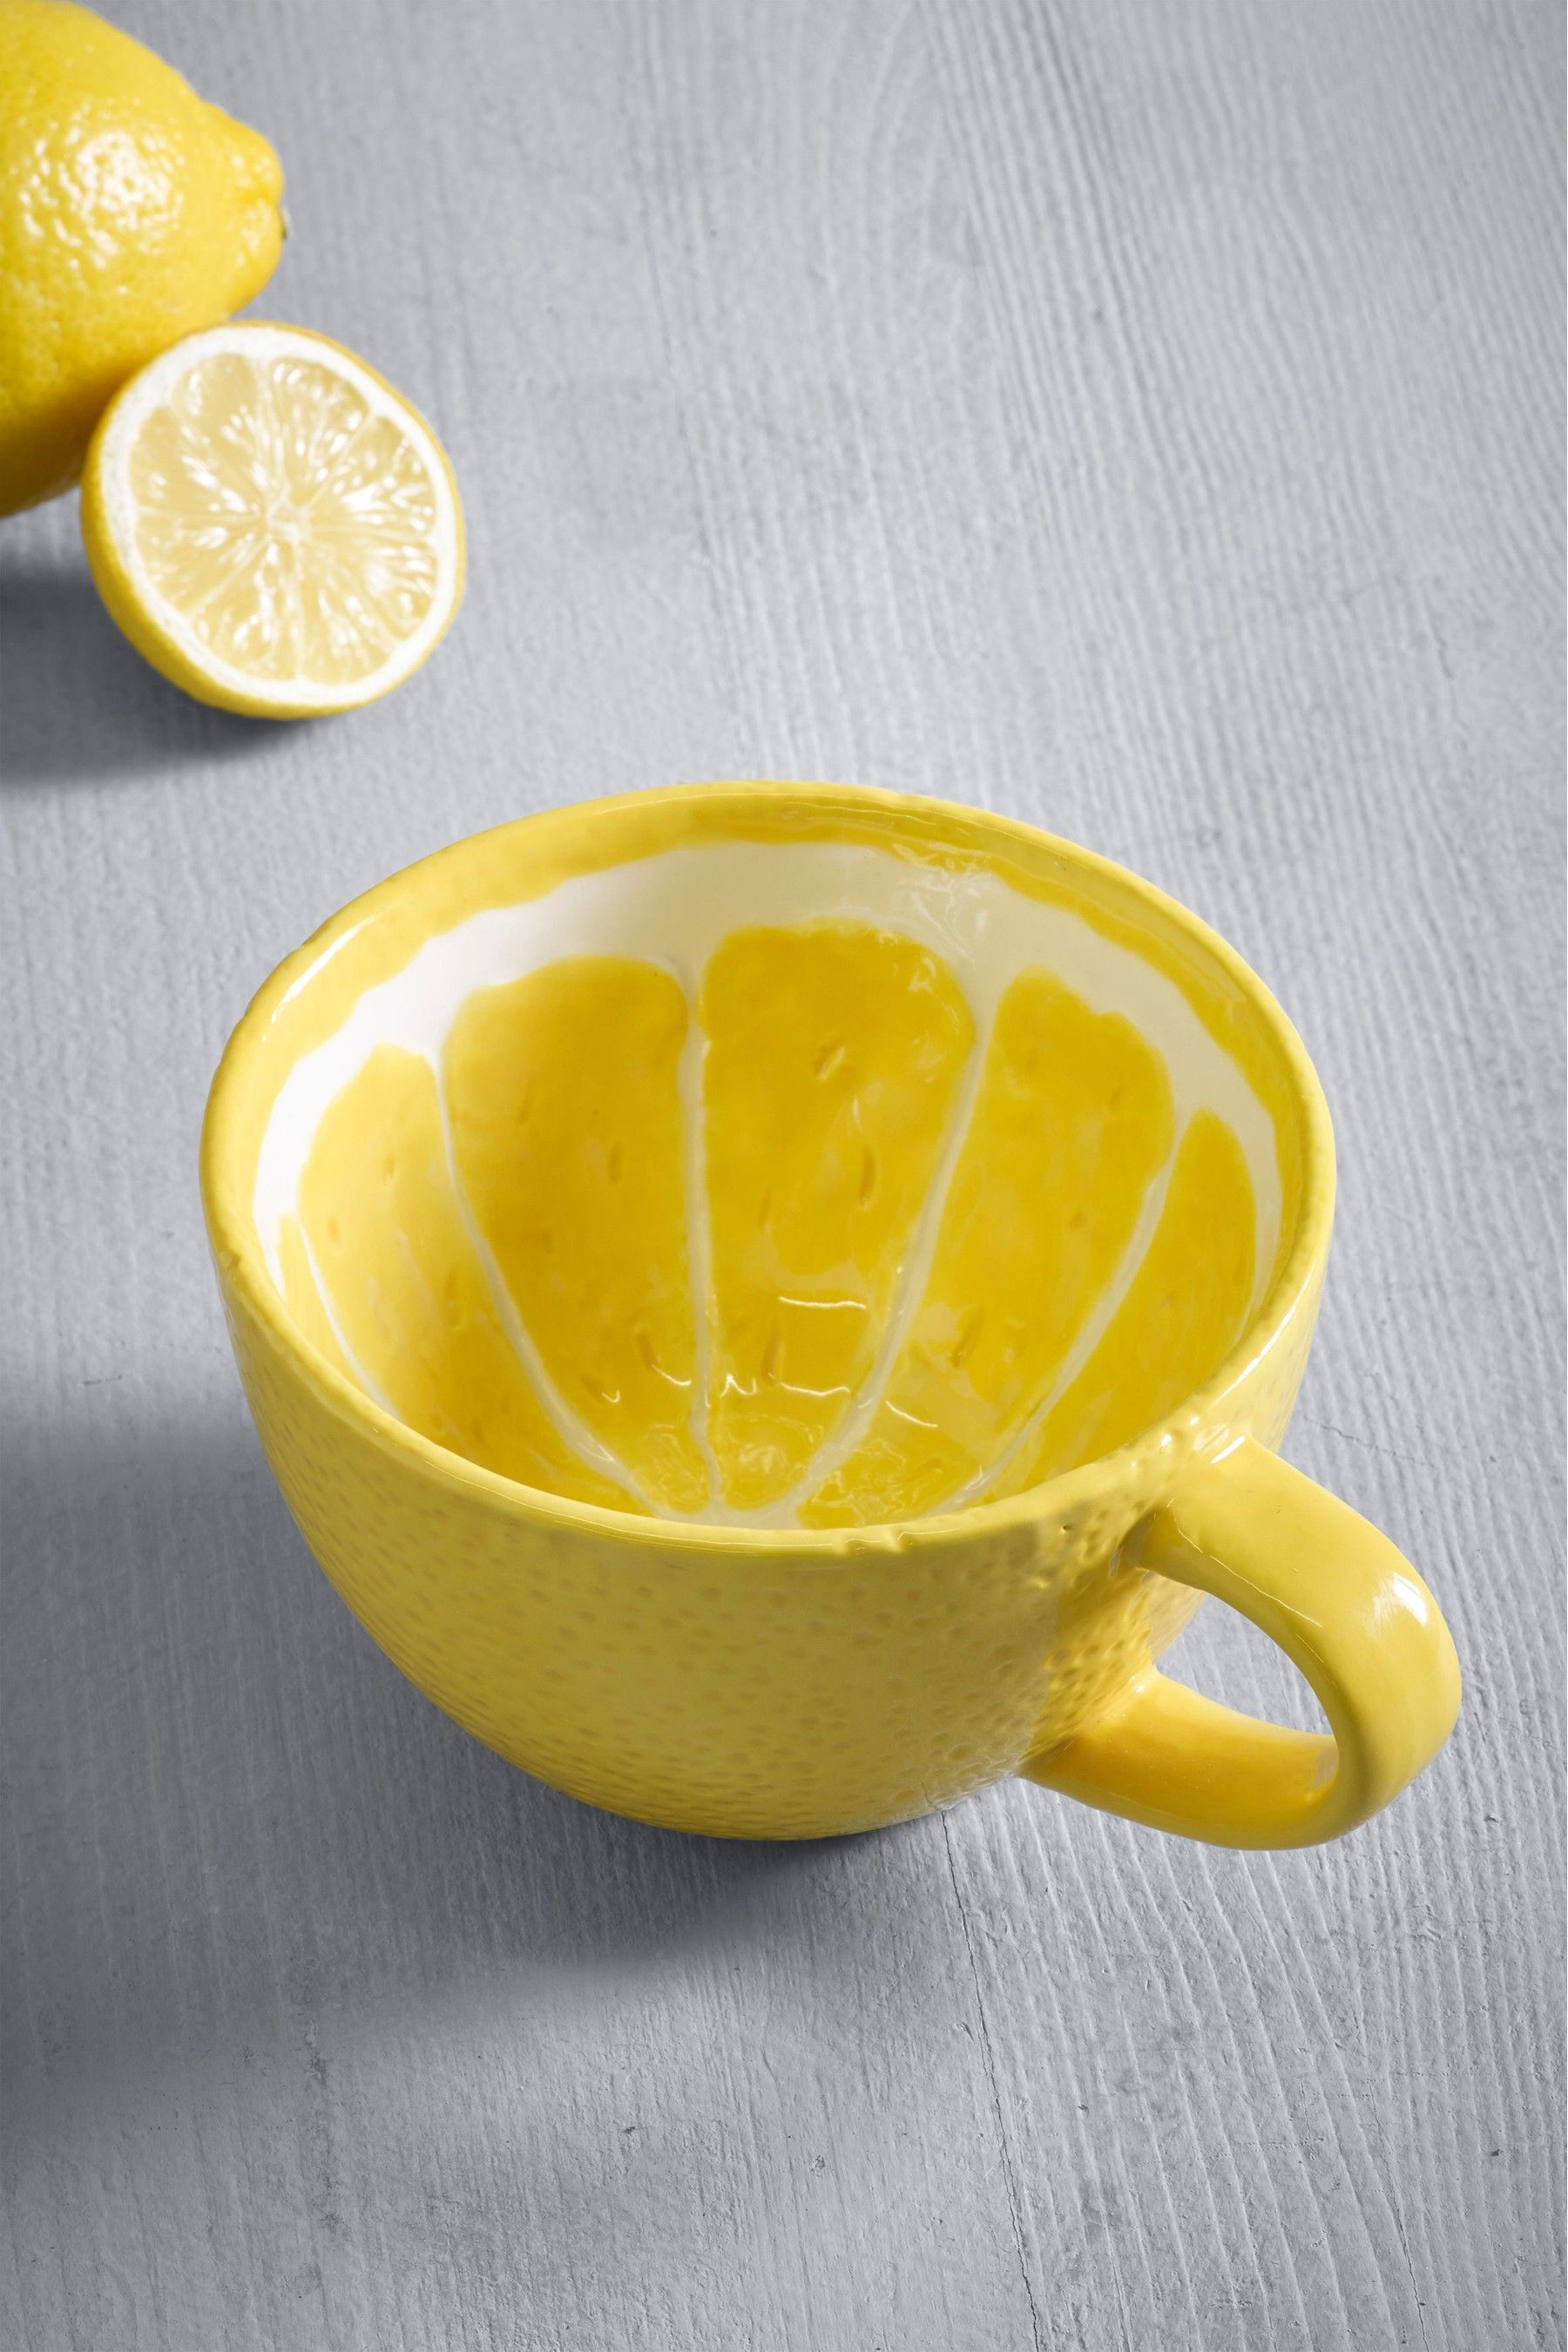 Next Lemon Shaped Mug Yellow In 2020 Clean Microwave